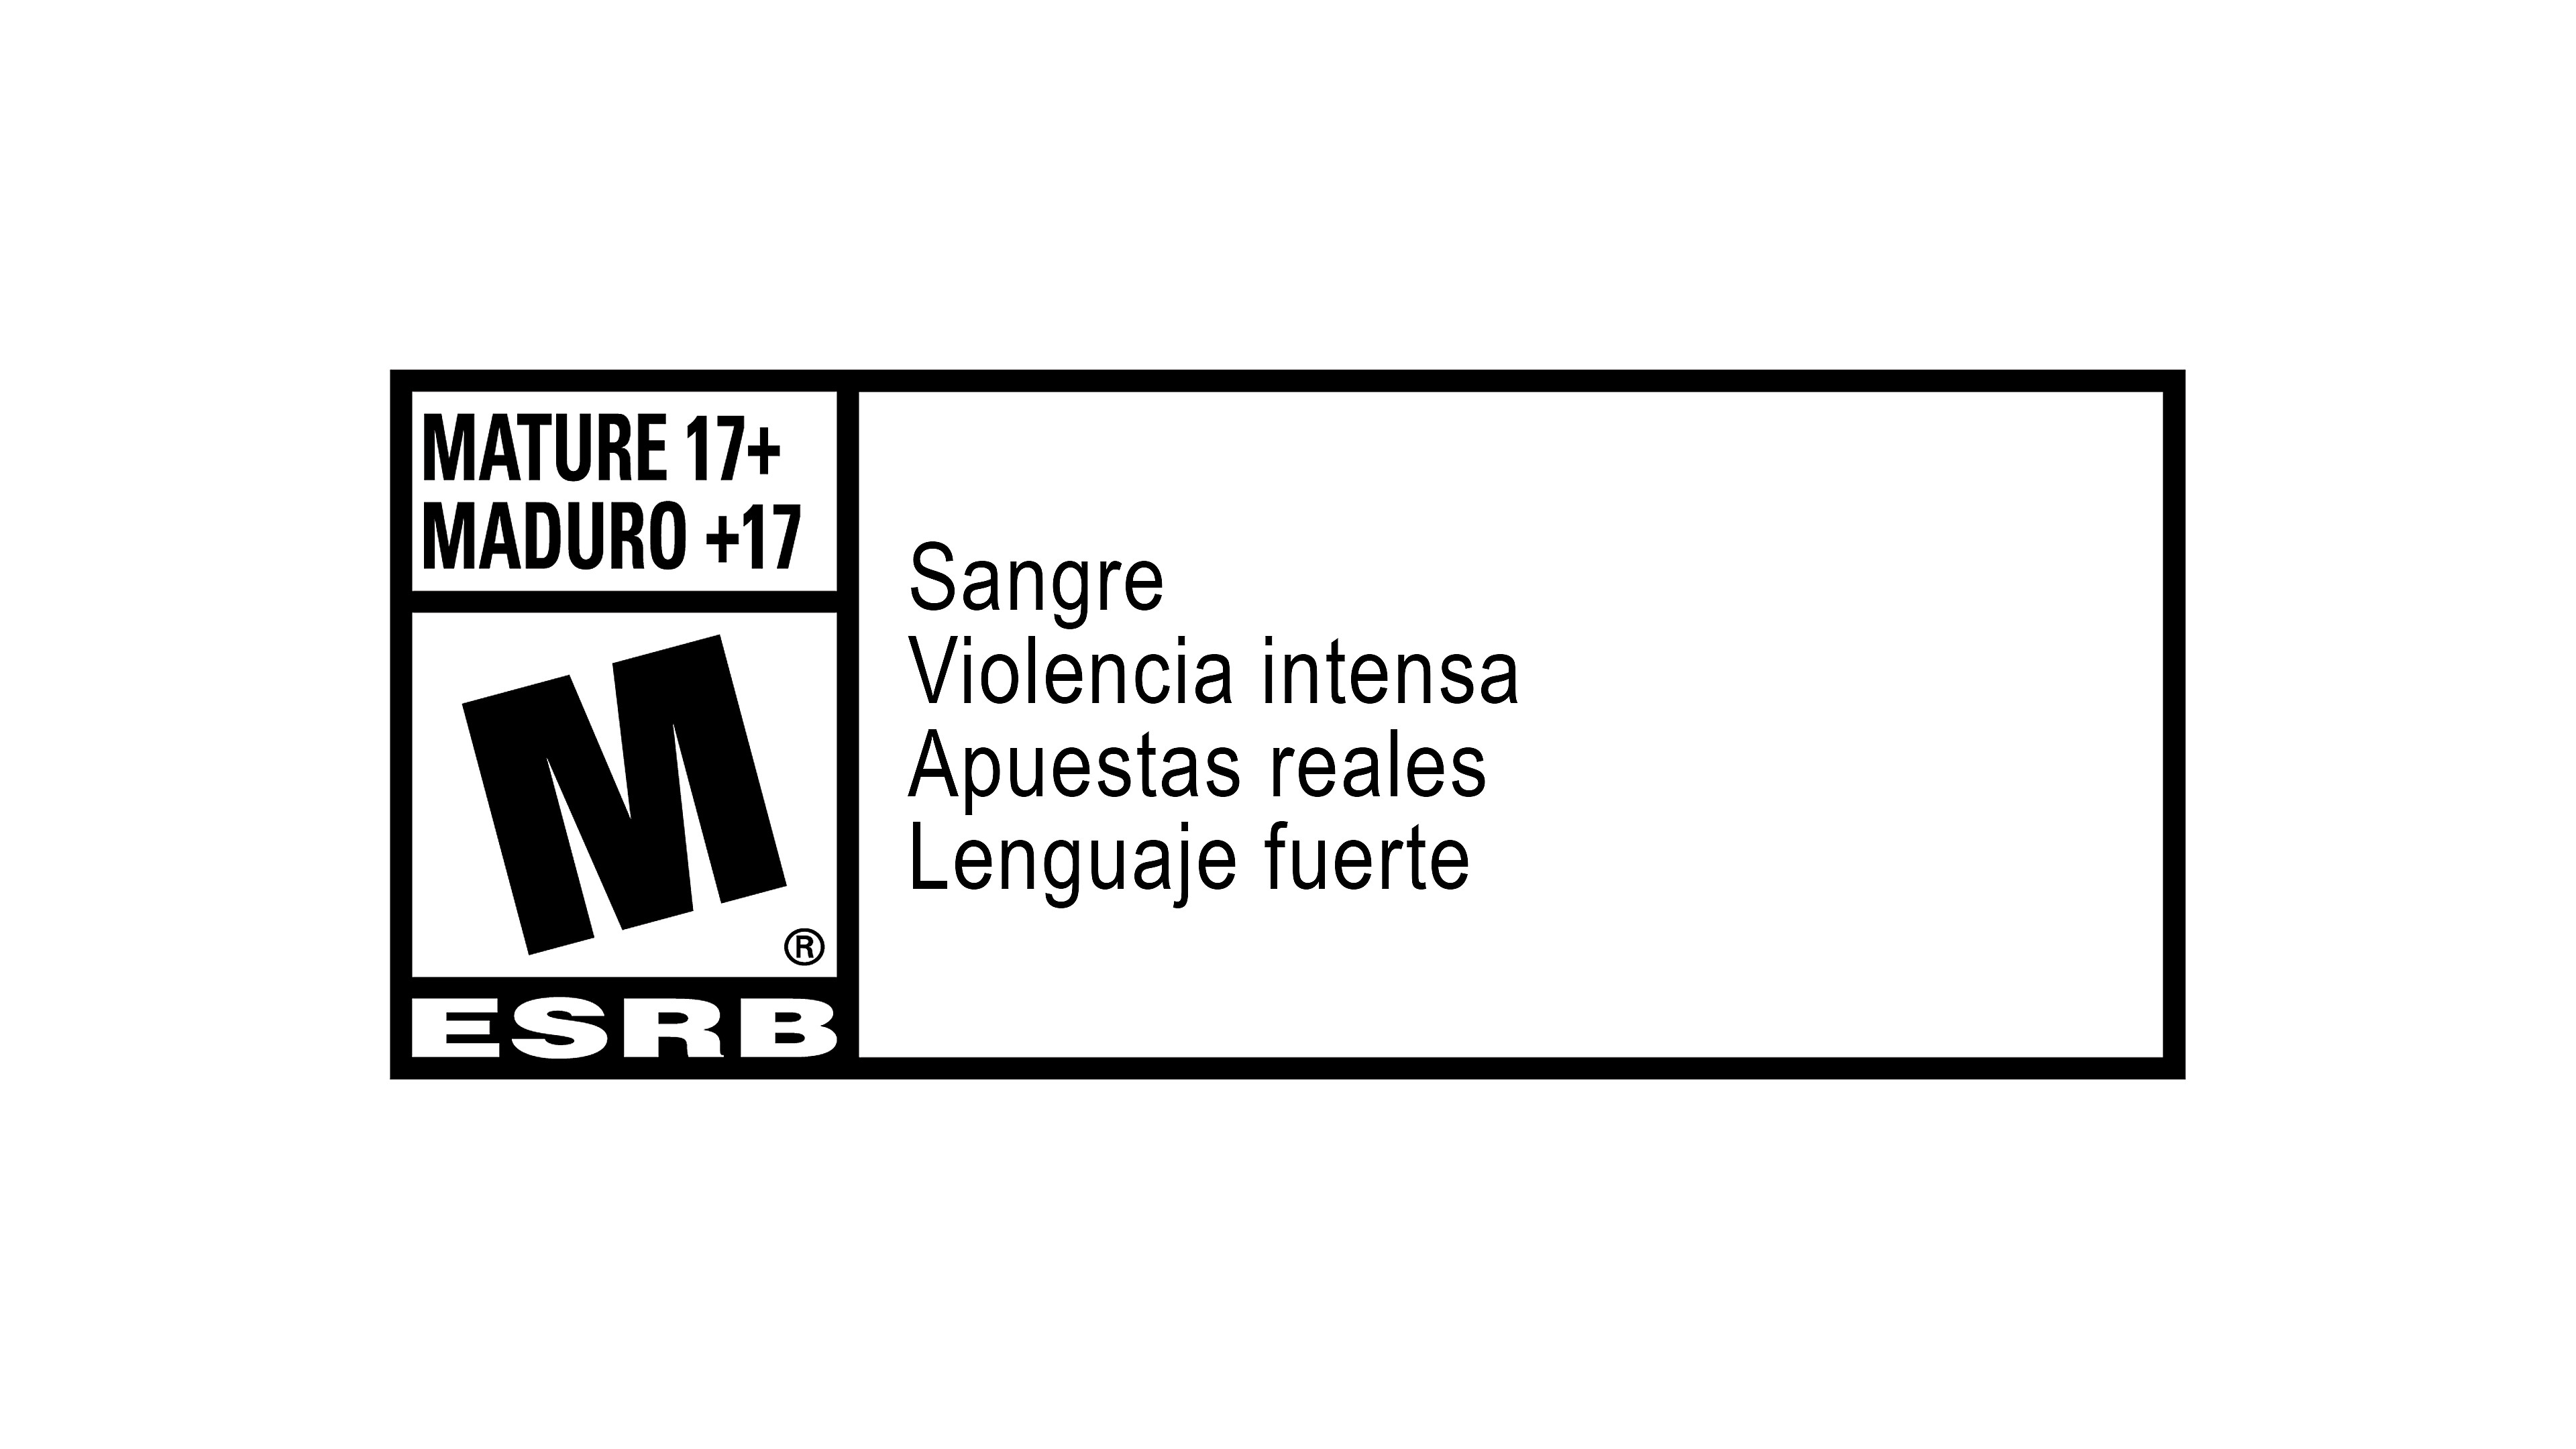 Logotipo de ESRB de Marvel's Spider-Man